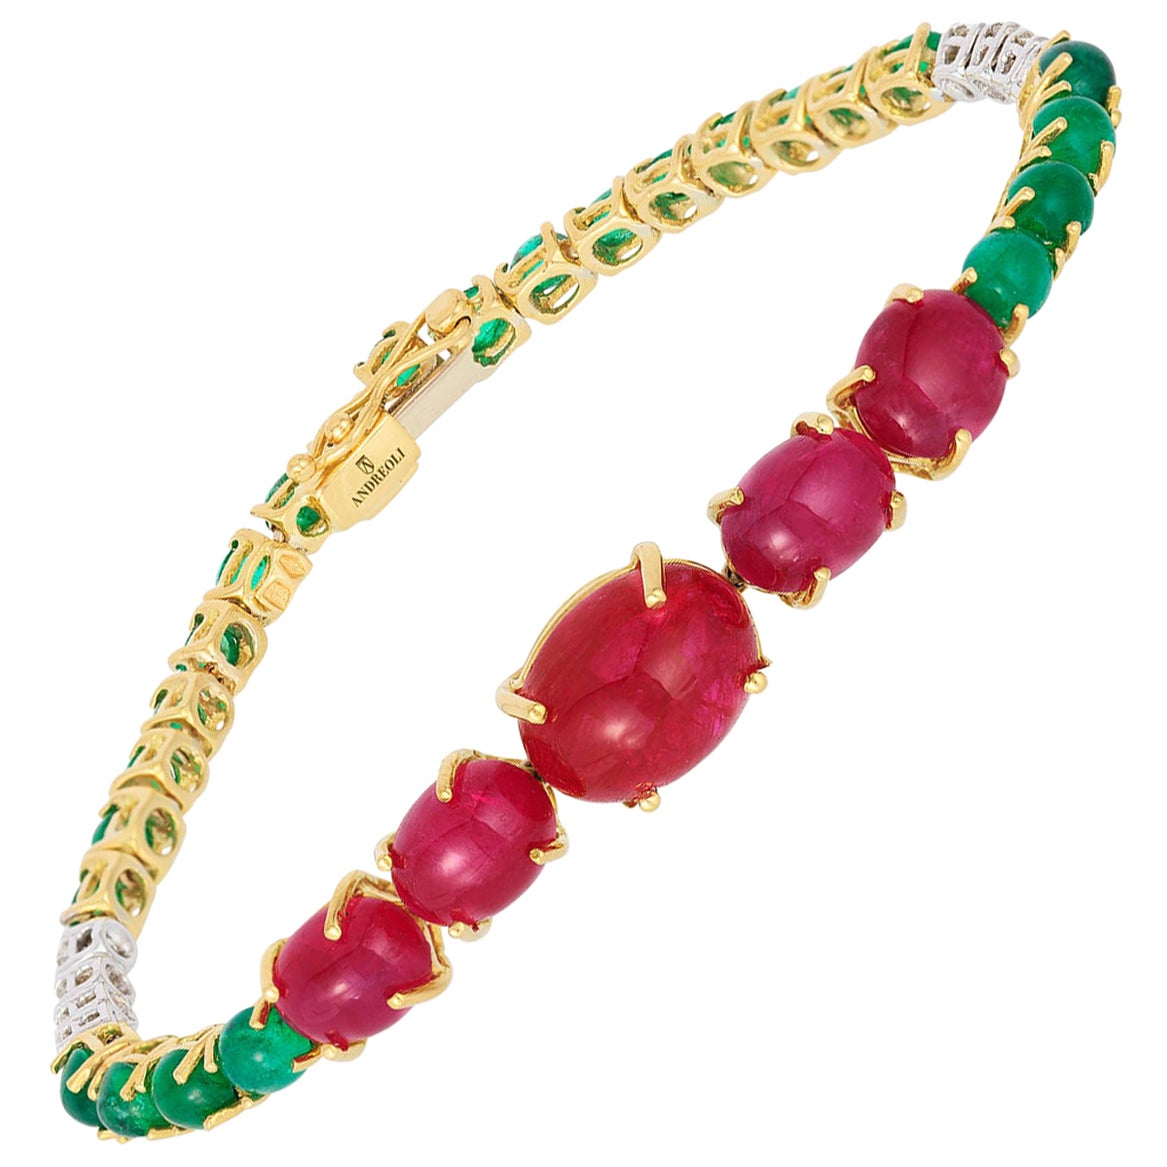 Andreoli Ruby Emerald Cabochon Dome Diamond Tennis Bracelet 18 Karat Yellow Gold